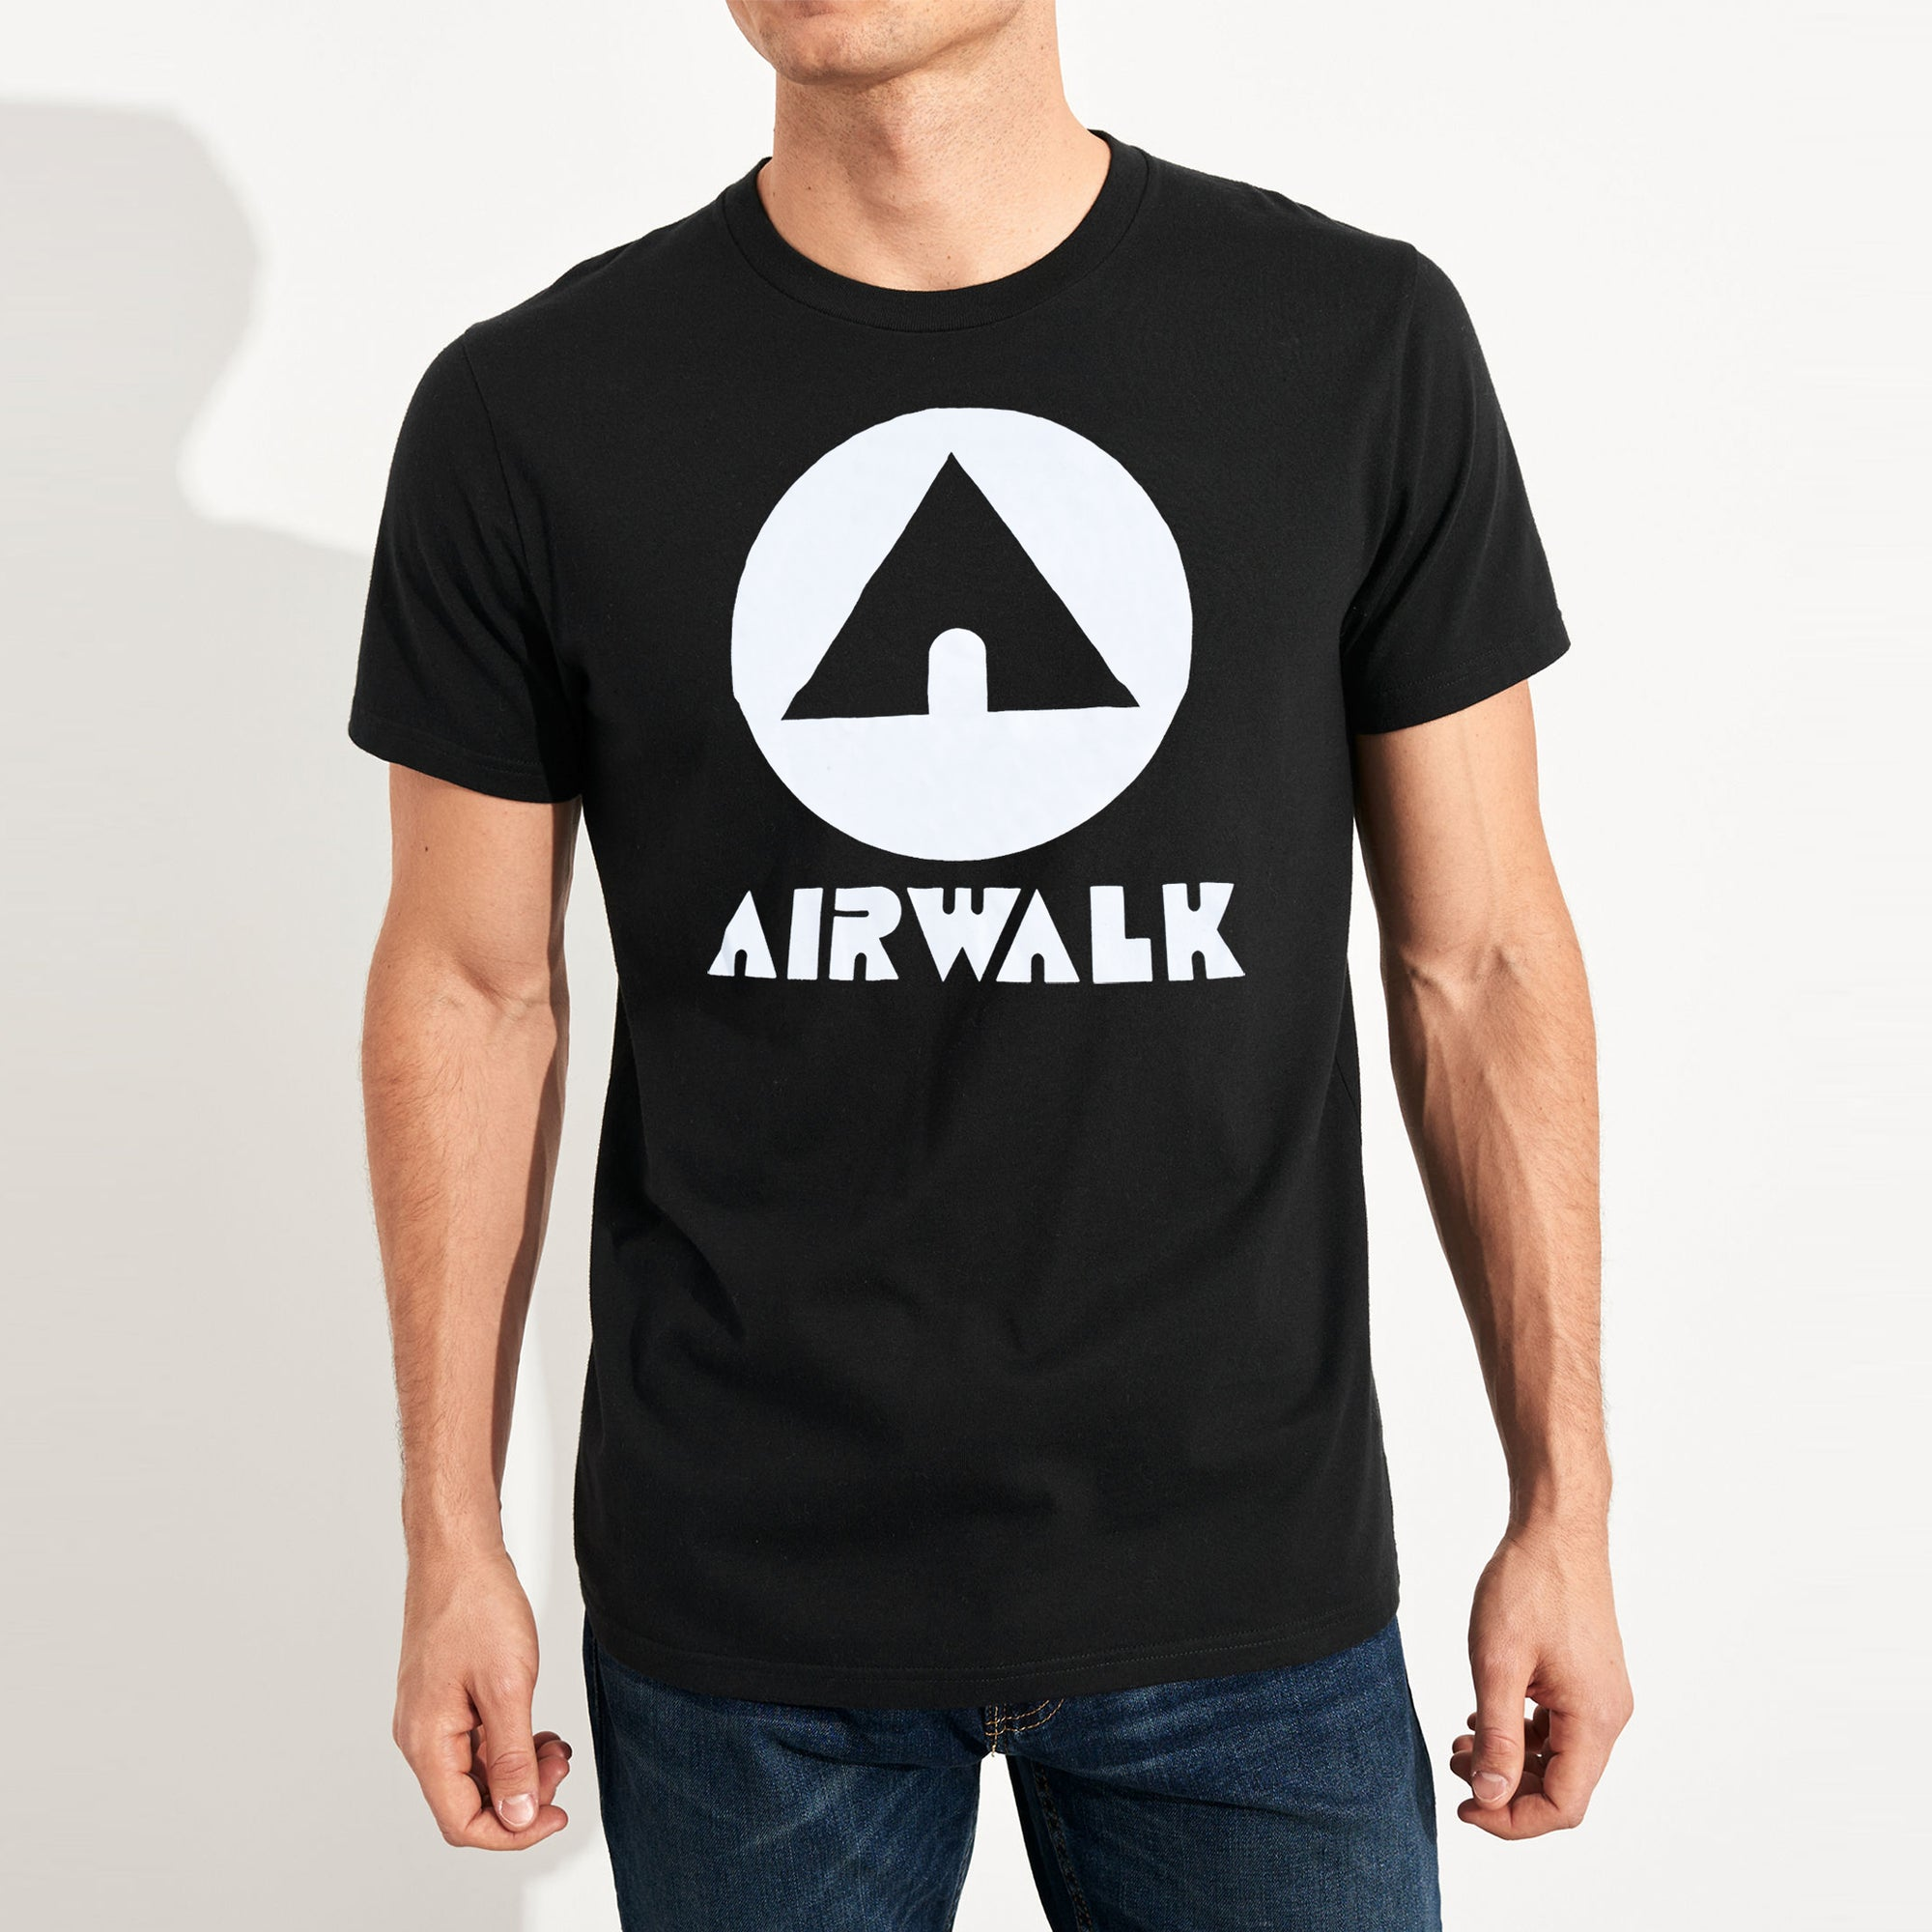 brandsego - Air Walk Single Jersey Half Sleeve Tee Shirt For Men-Black-SP167